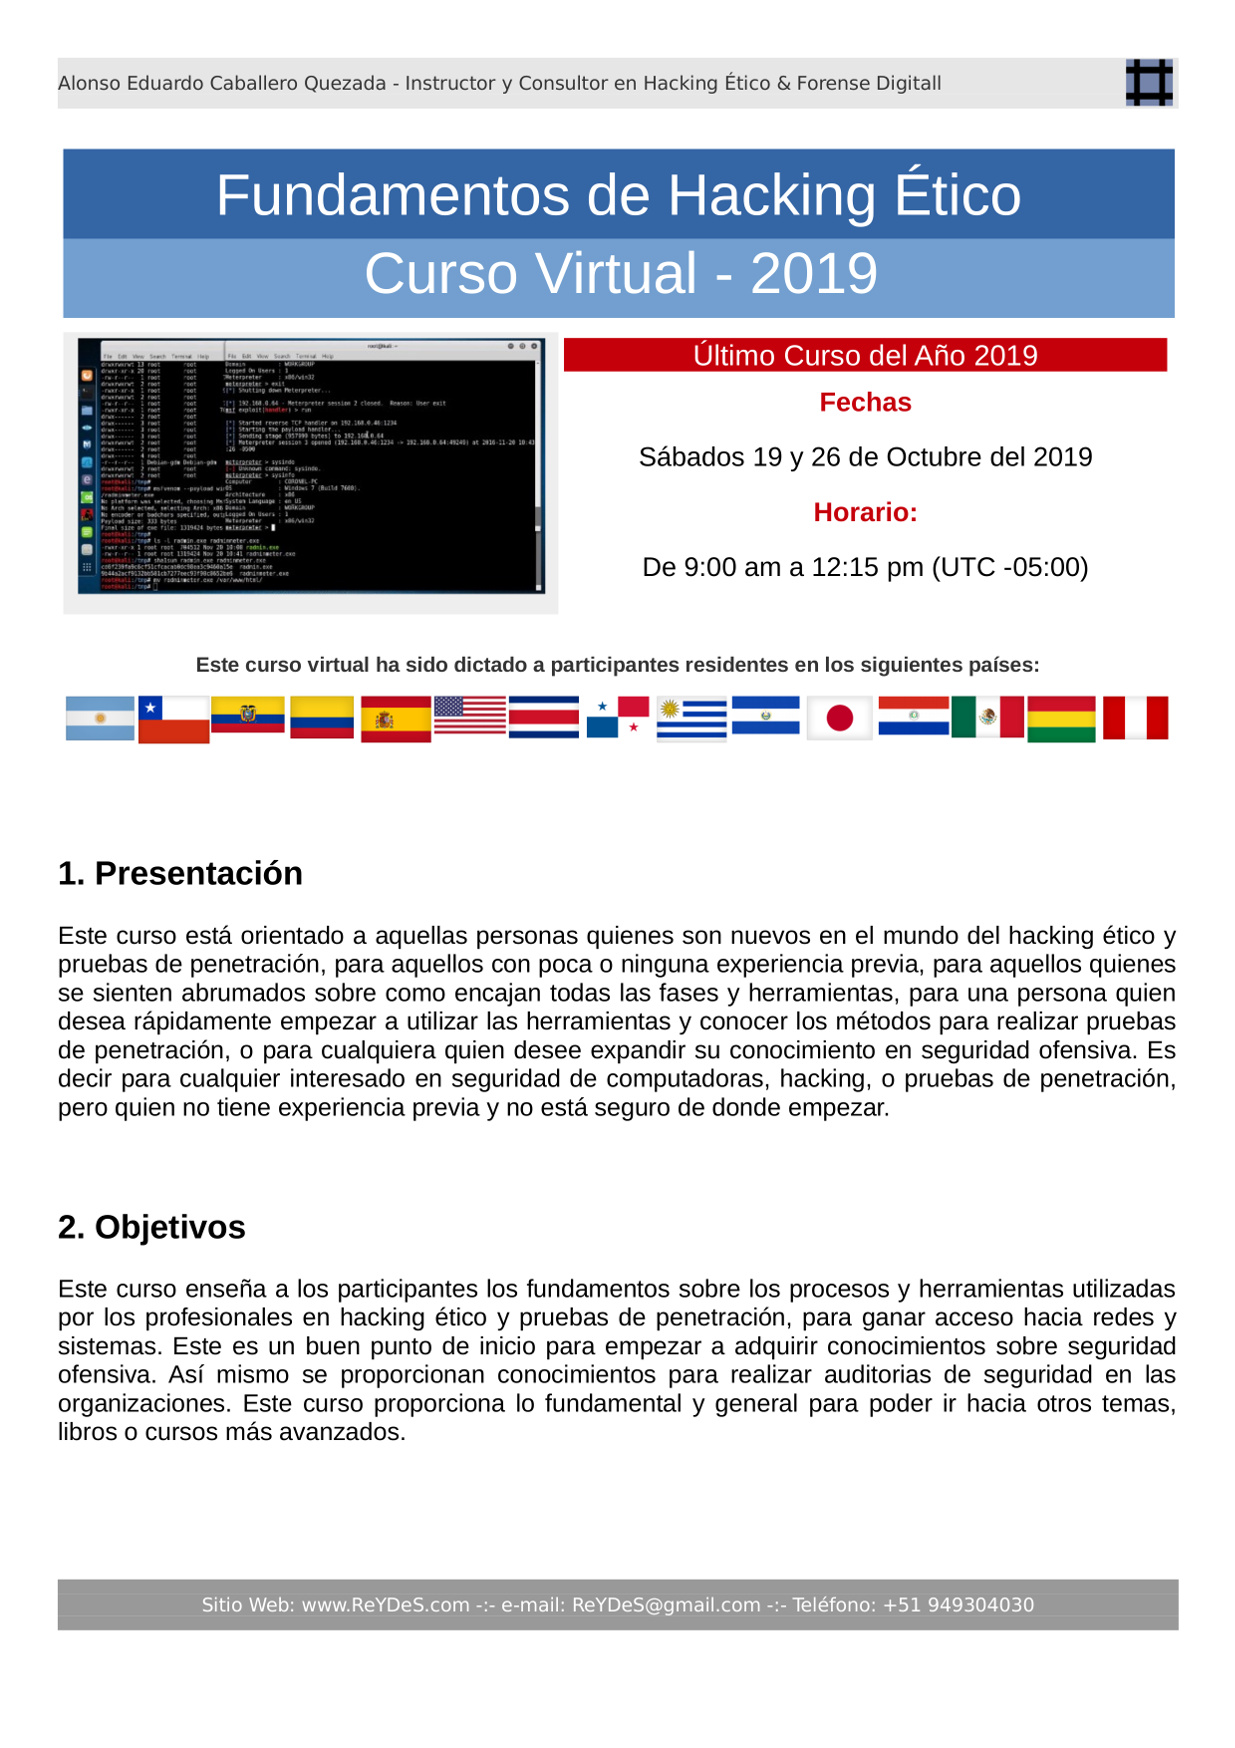 Único Curso Virtual Fundamentos de Hacking Ético 2019